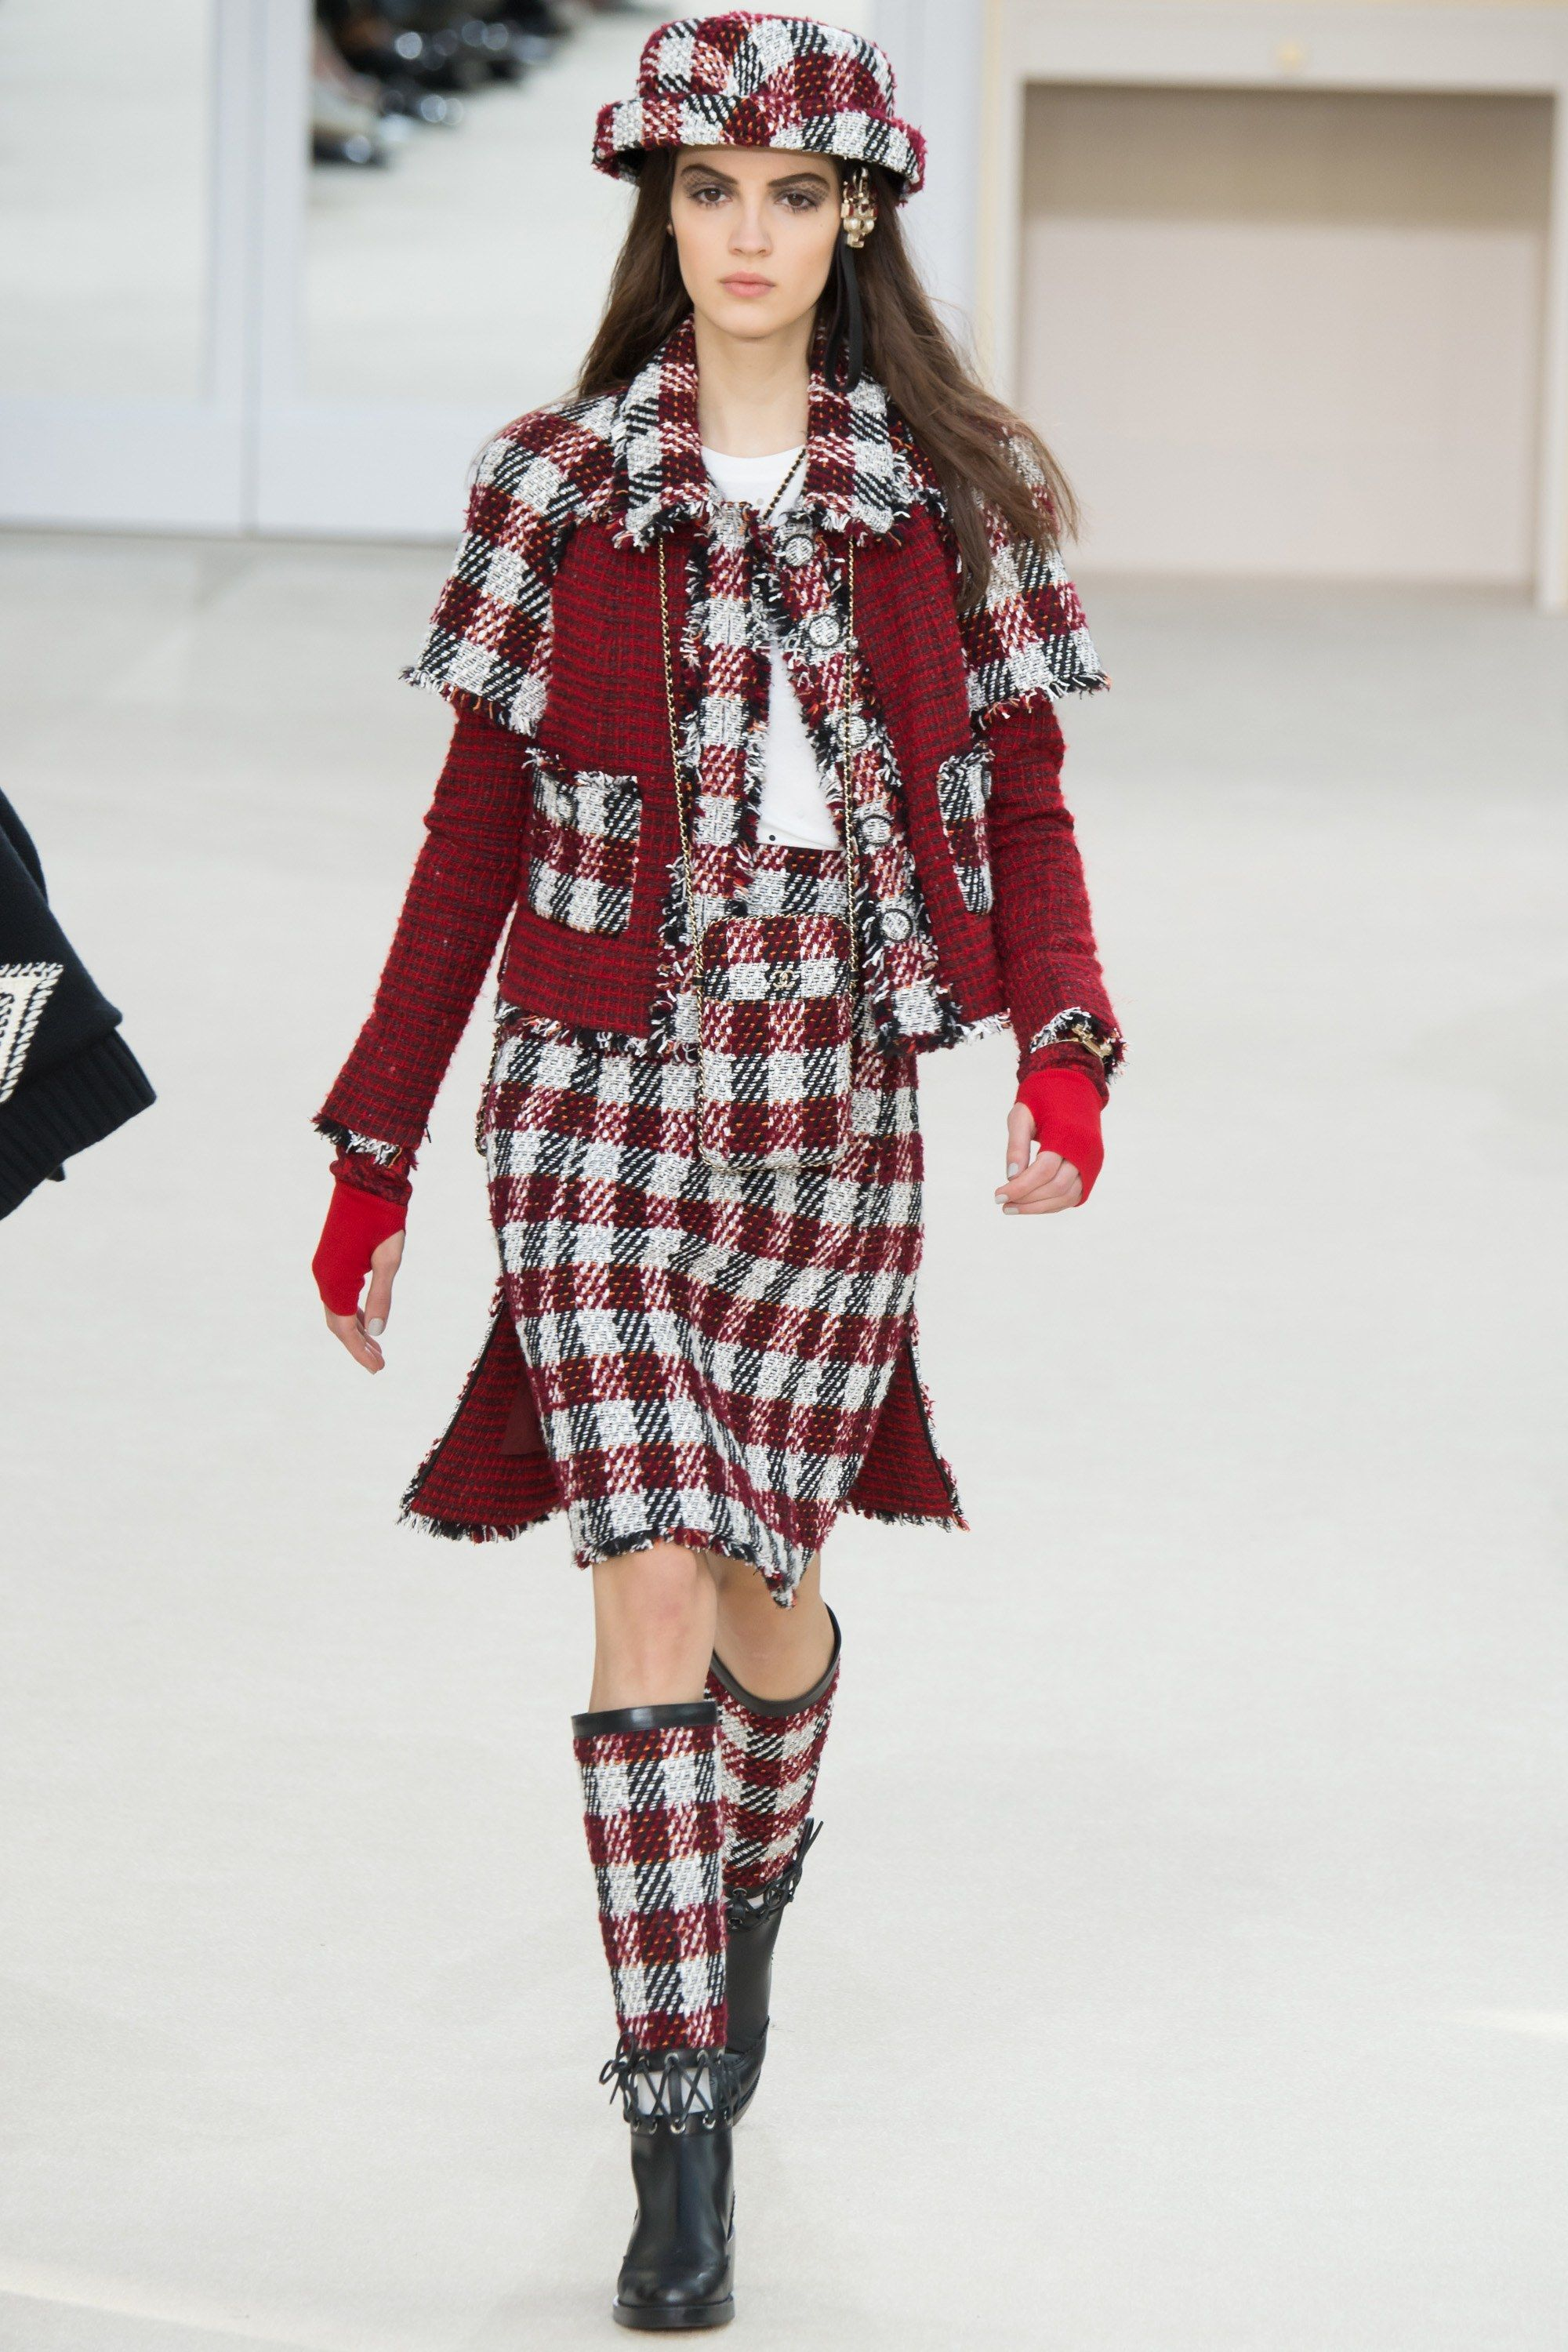 fc537d4cfec Chanel Fall 2016 Ready-to-Wear Fashion Show - Camille Hurel